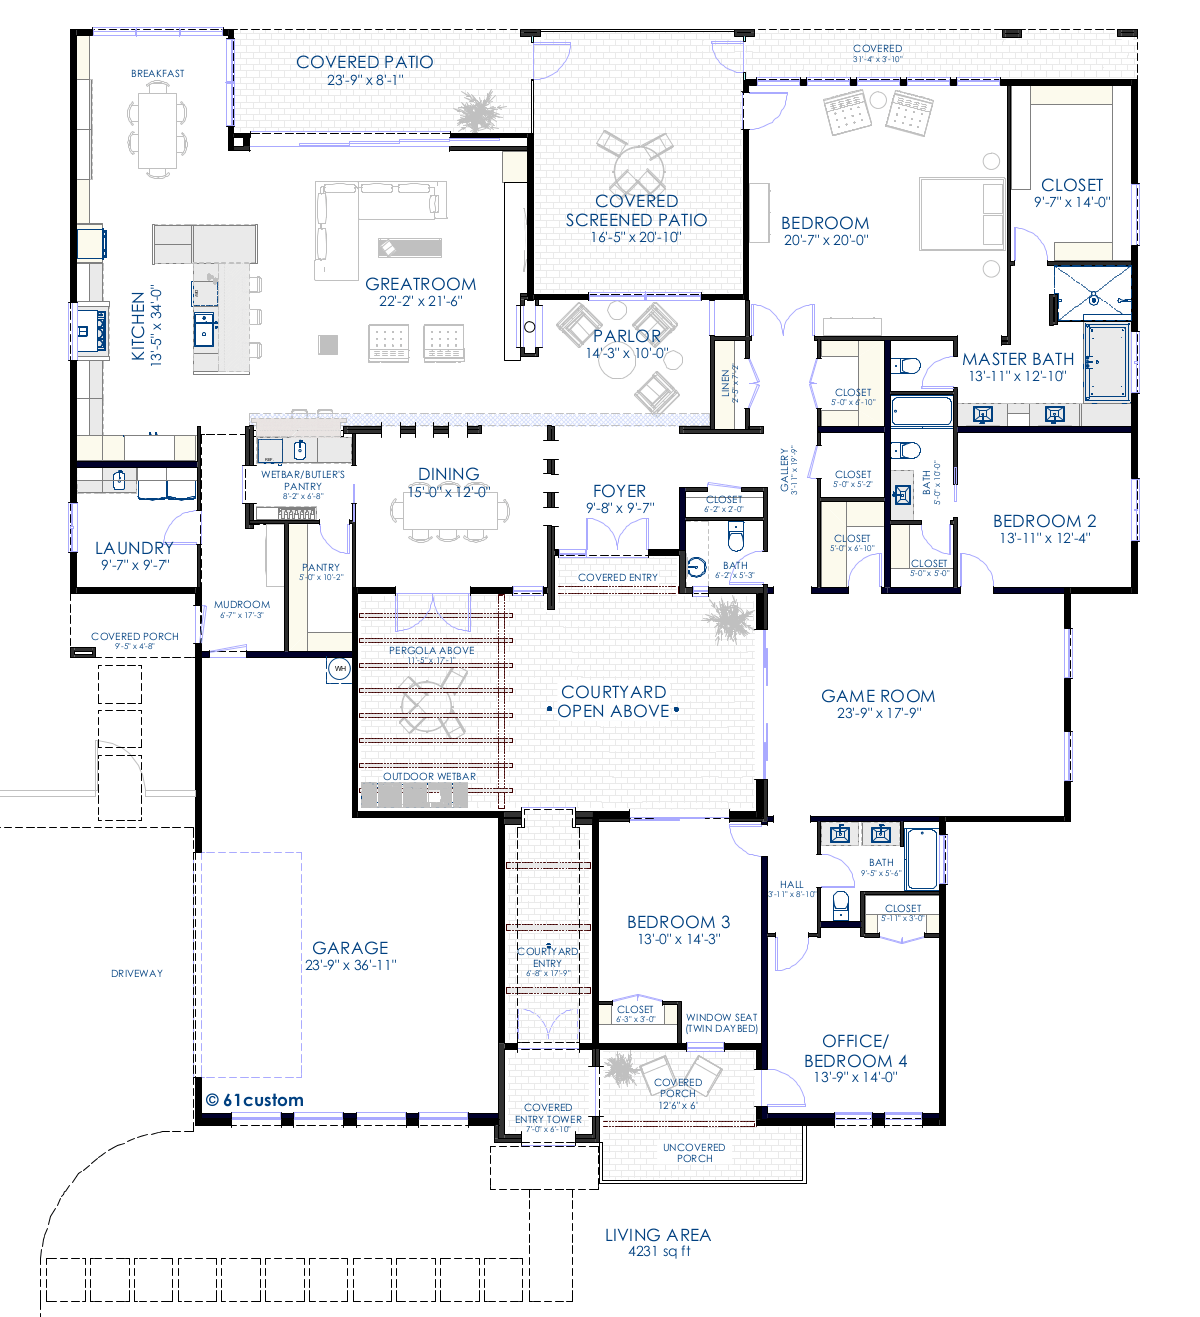 House plans and design contemporary house plans with for Custom house blueprints